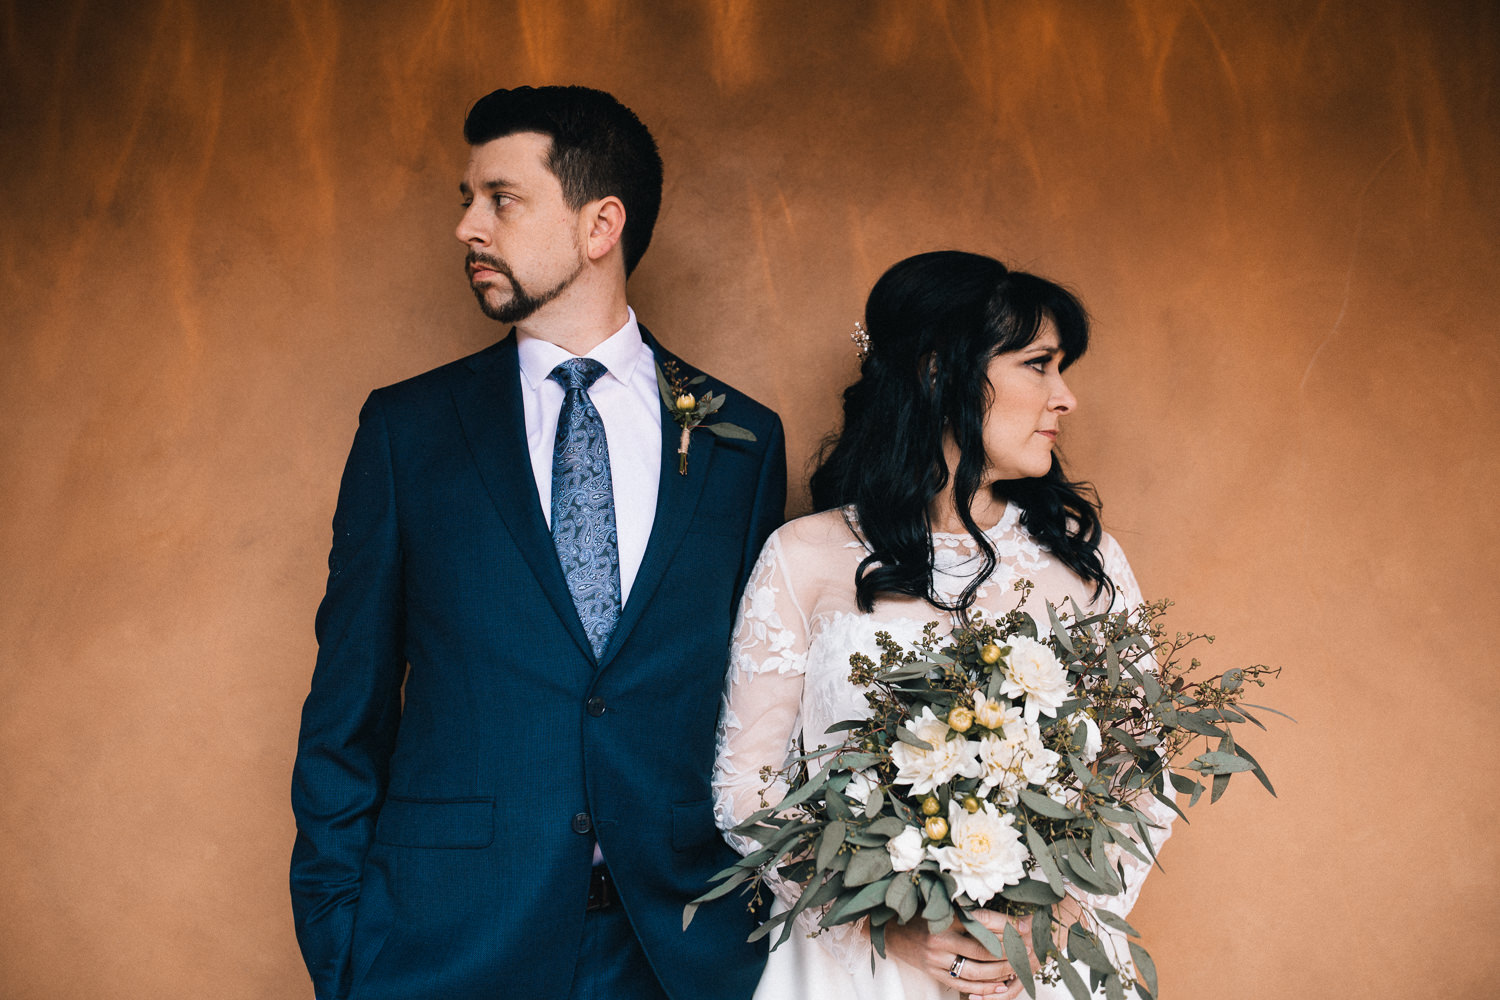 2019_05_ 182019.05.19 Lisa + Eddie South Bay Wedding Blog Photos Edited For Web 0083.jpg